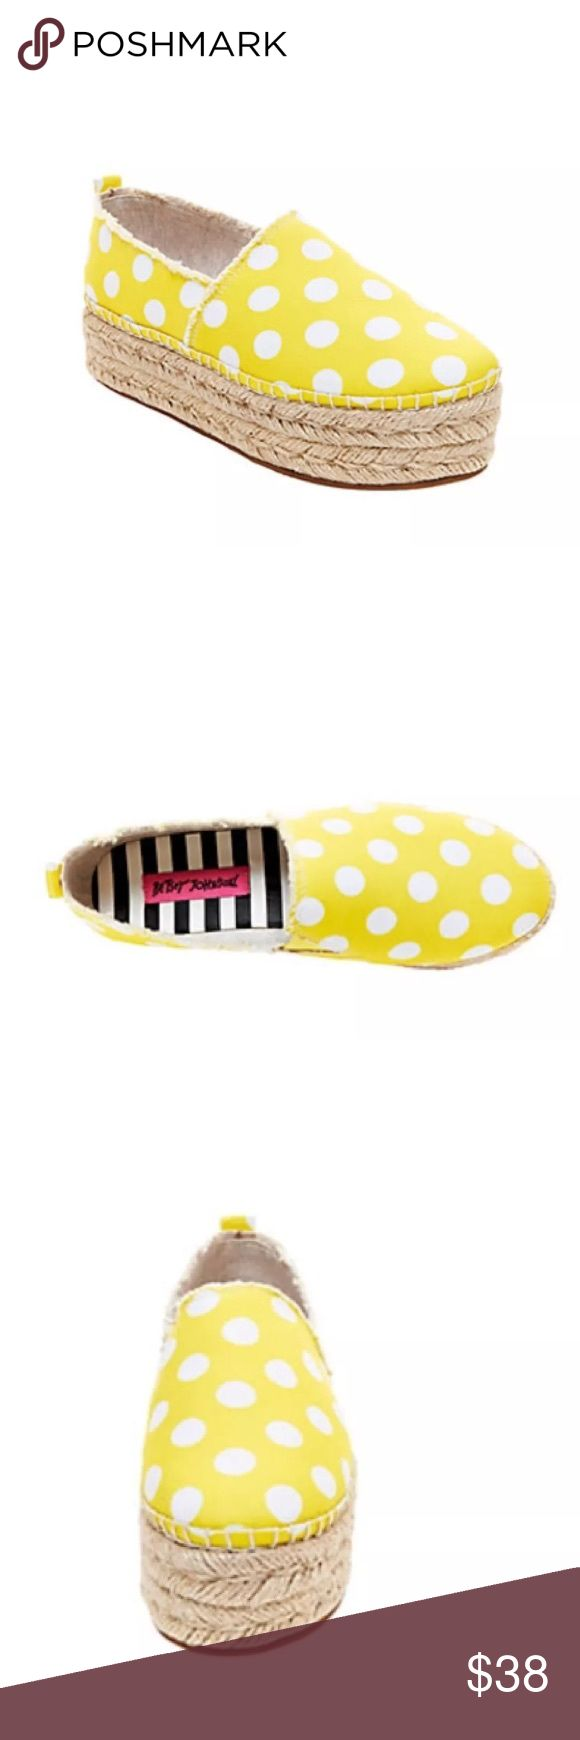 Betsey Johnson Flounce Yellow Espadrilles sz 7 Betsey Johnson Flounce Yellow white polka dots  Espadrille Flats Women's Shoes- Size 7 Brand new without box Man-made upper Man-made lining Man-made sole 1.5 inch platform Betsey Johnson Shoes Espadrilles